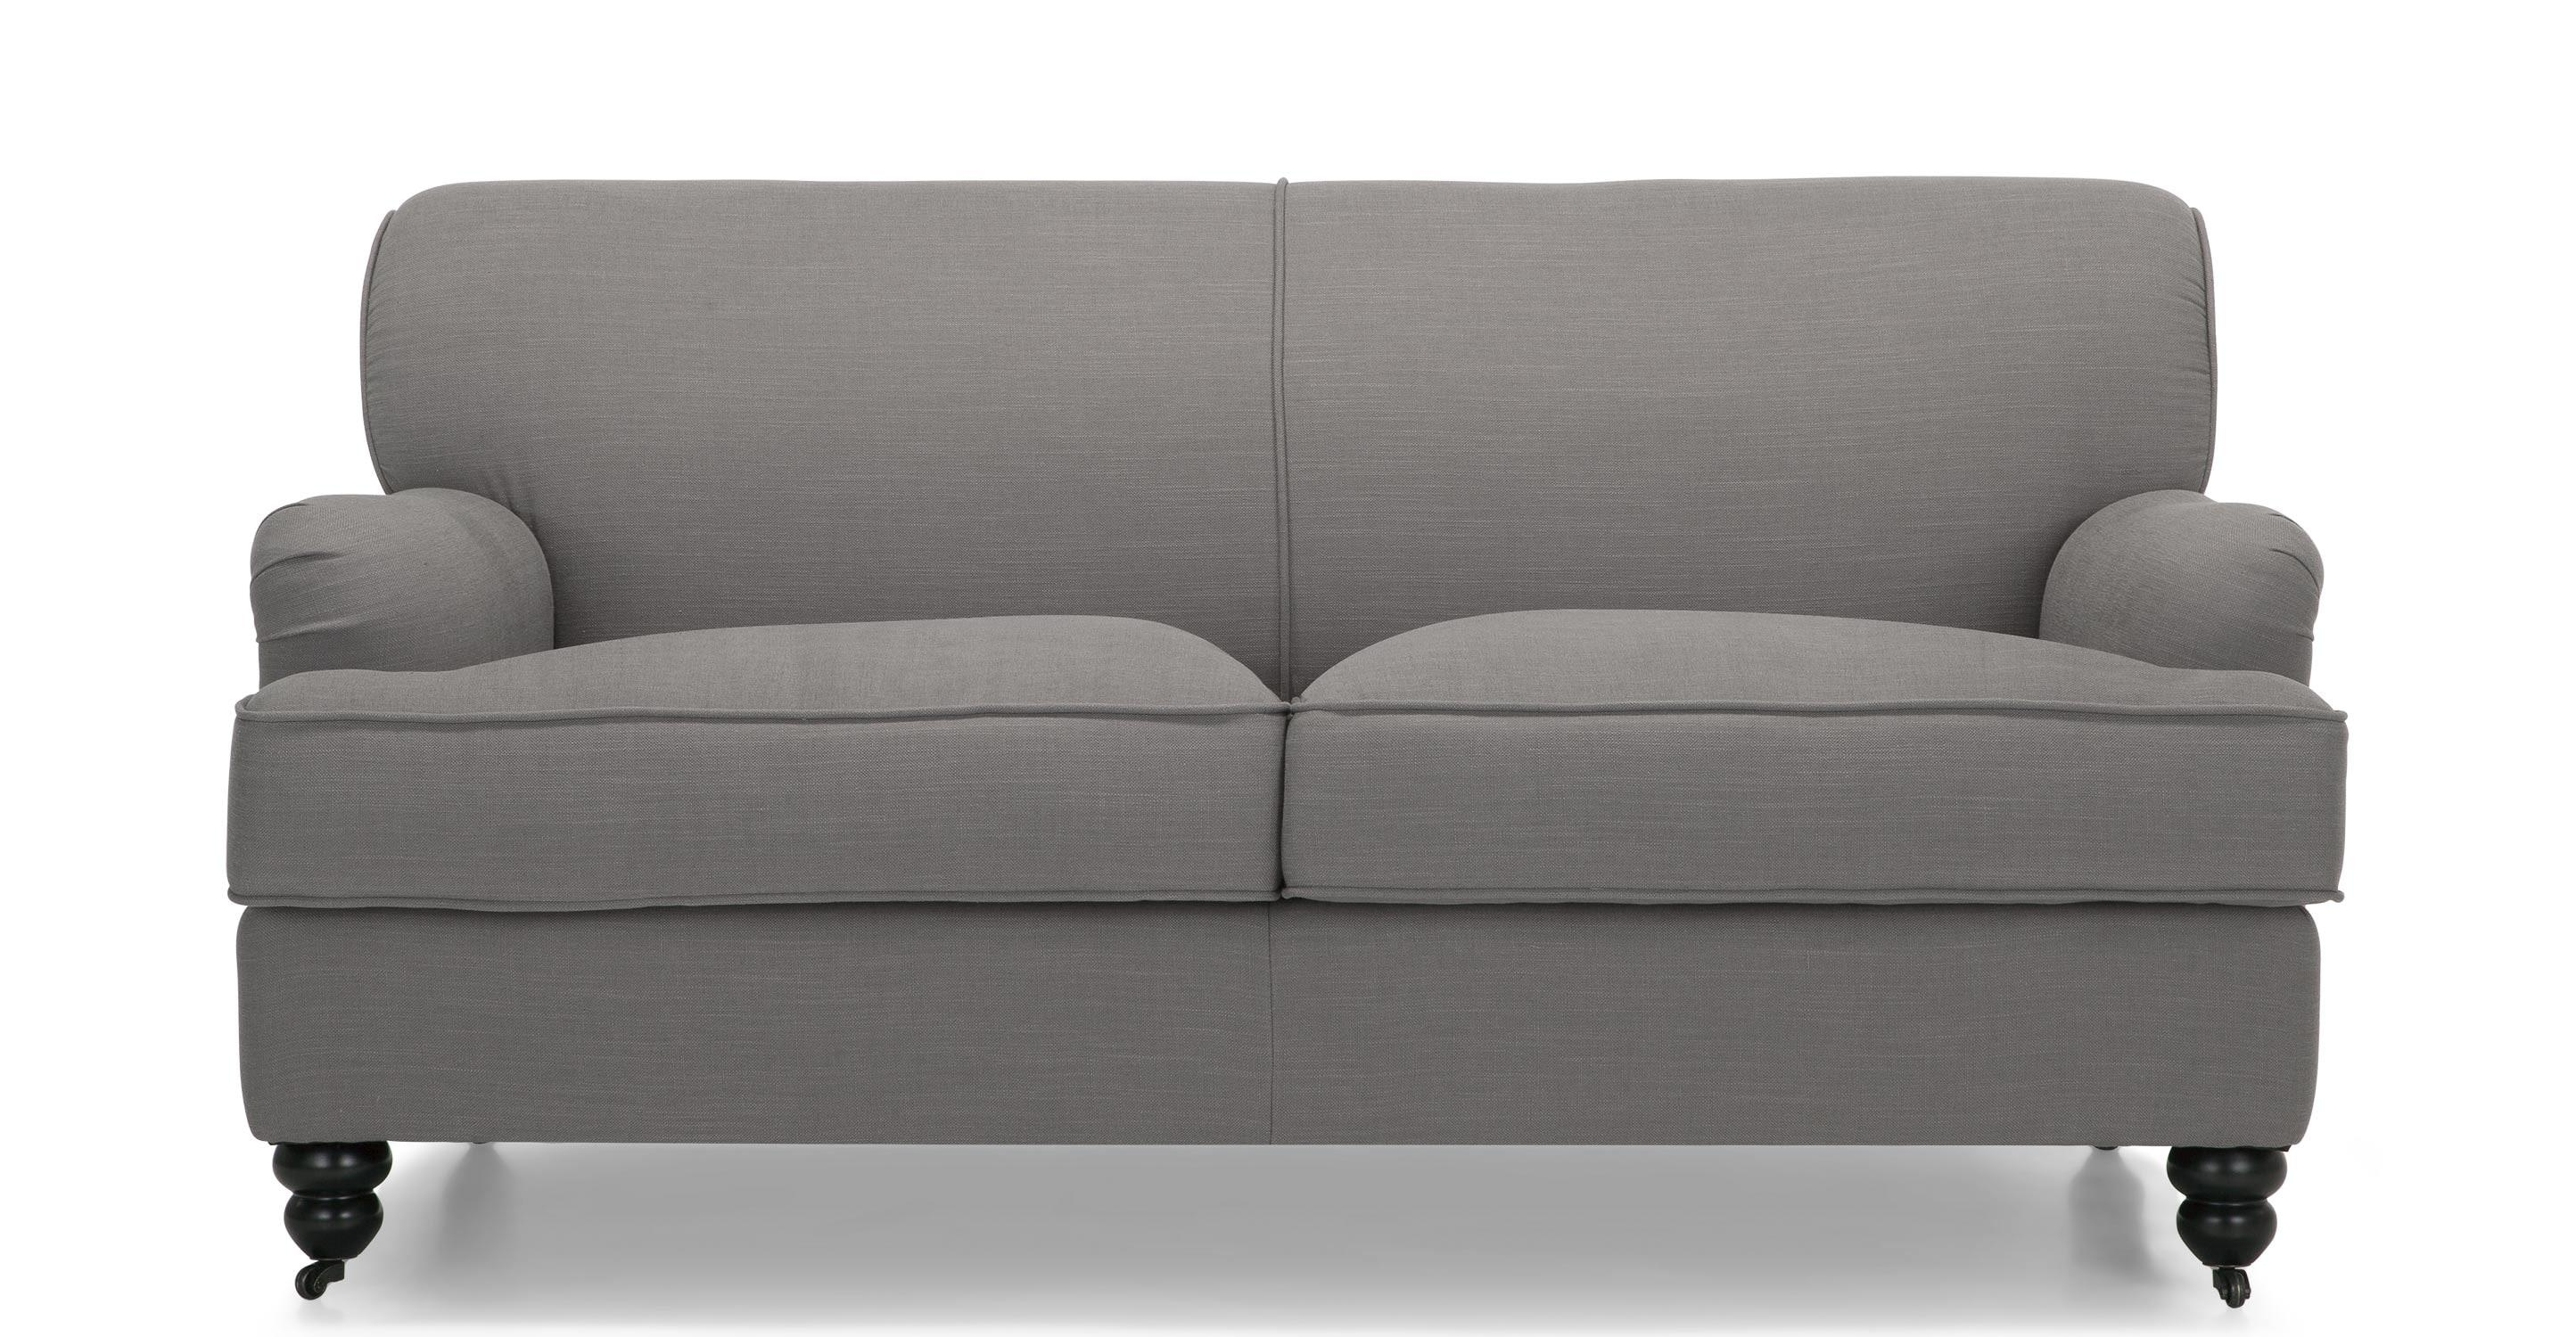 Orson 2 Seater Sofa, Graphite Grey | Made Pertaining To Two Seater Sofas (View 6 of 20)